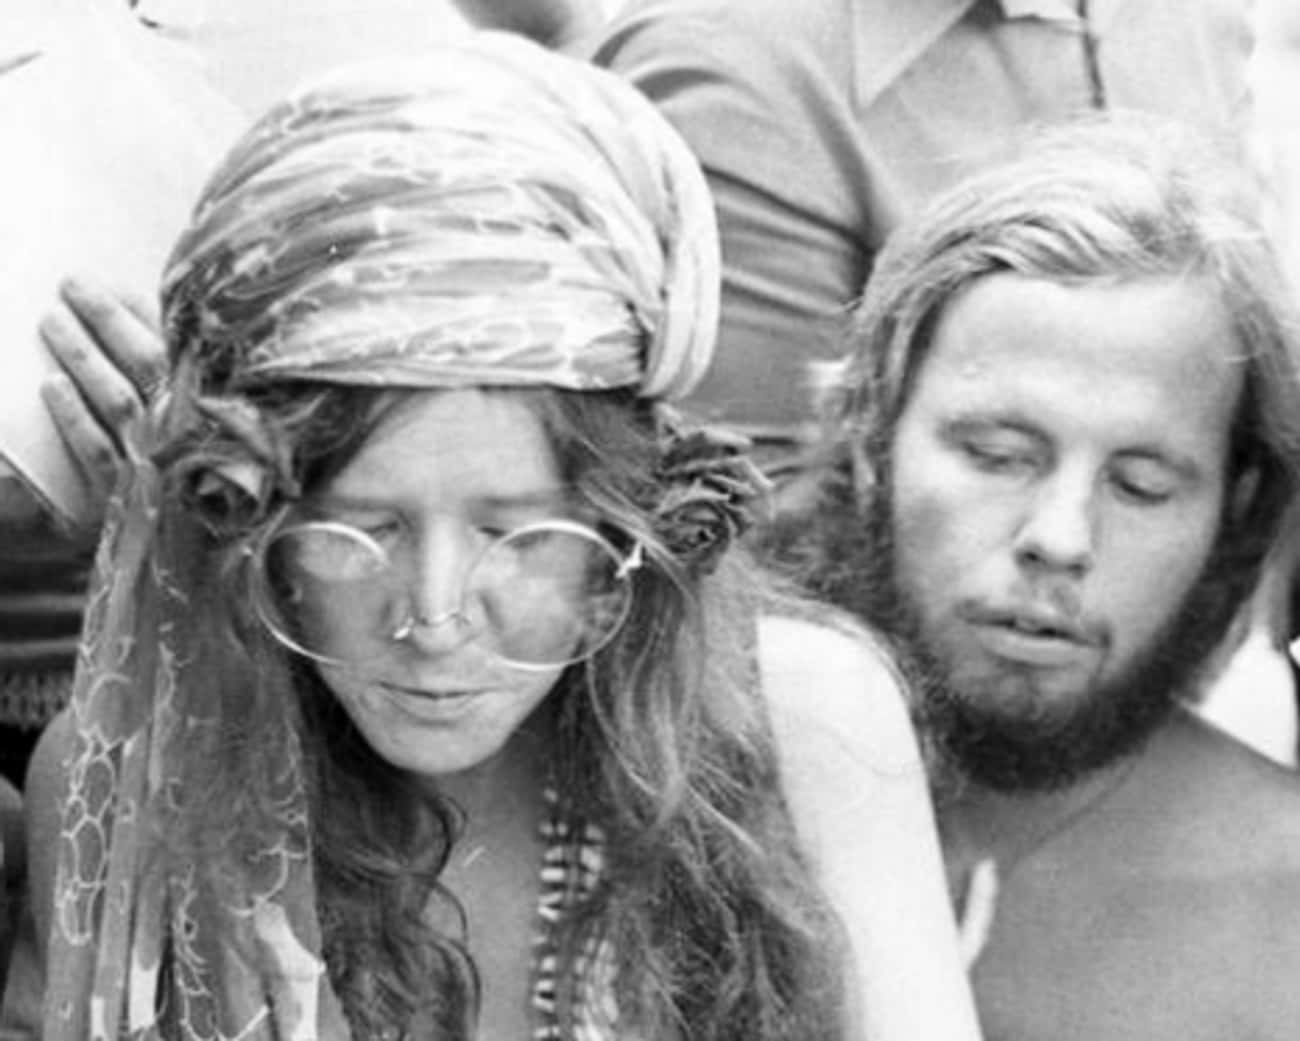 Joplin Almost Married A Guy Wh is listed (or ranked) 3 on the list Fascinating Stories From Janis Joplin's Personal Life